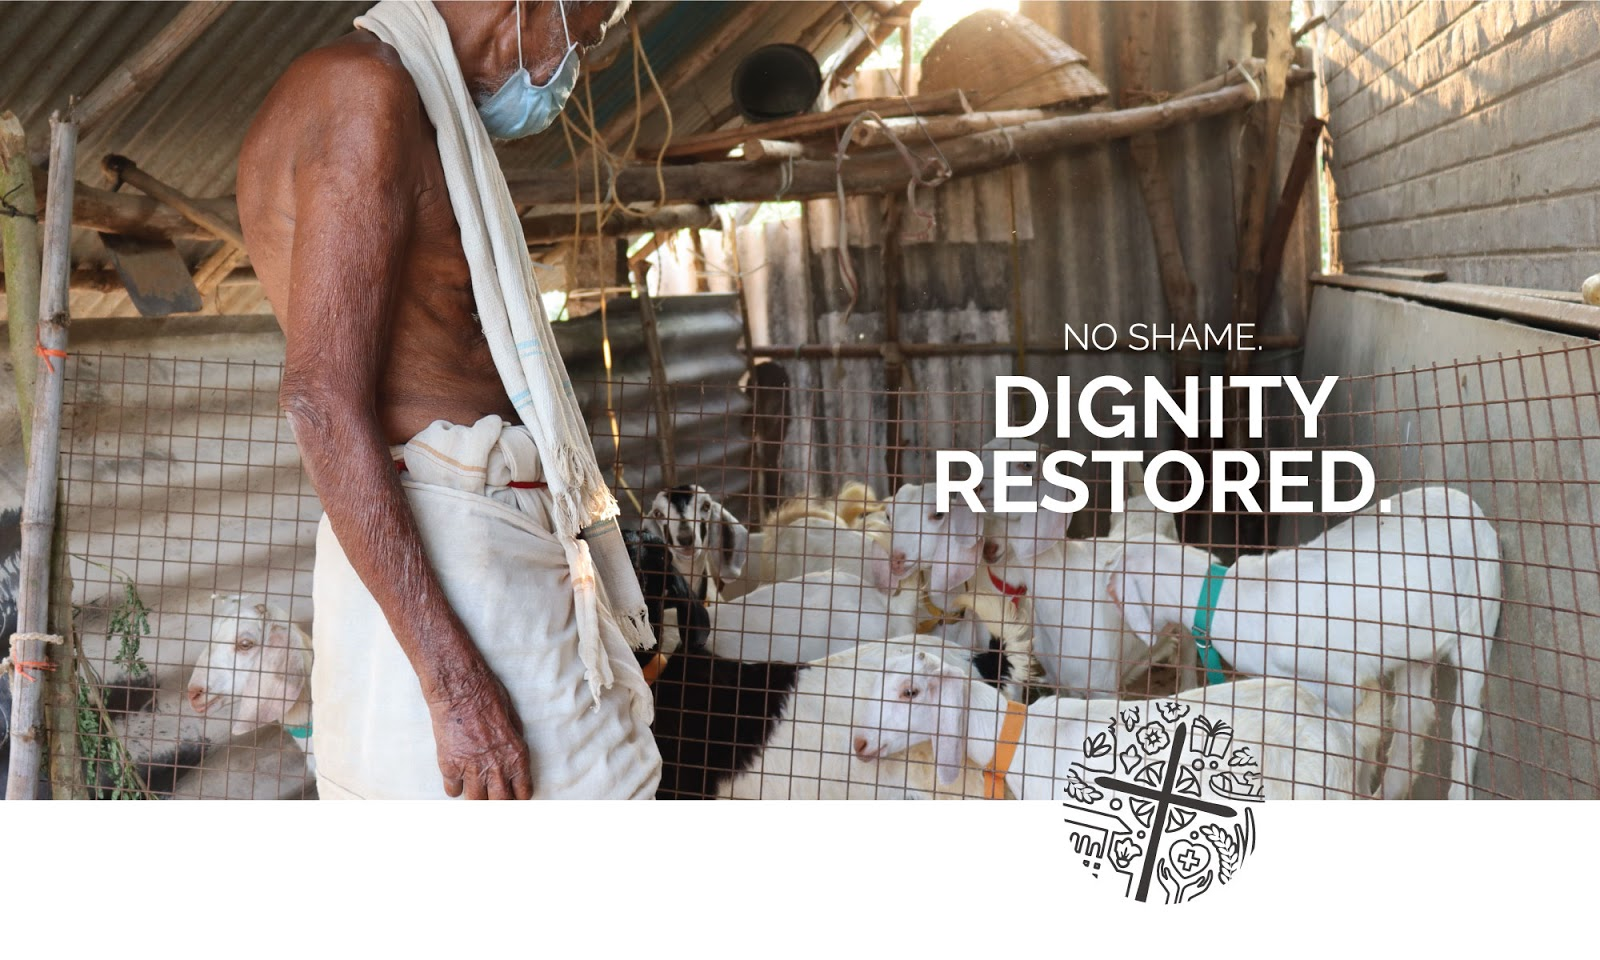 Restoring dignity, one family at a time